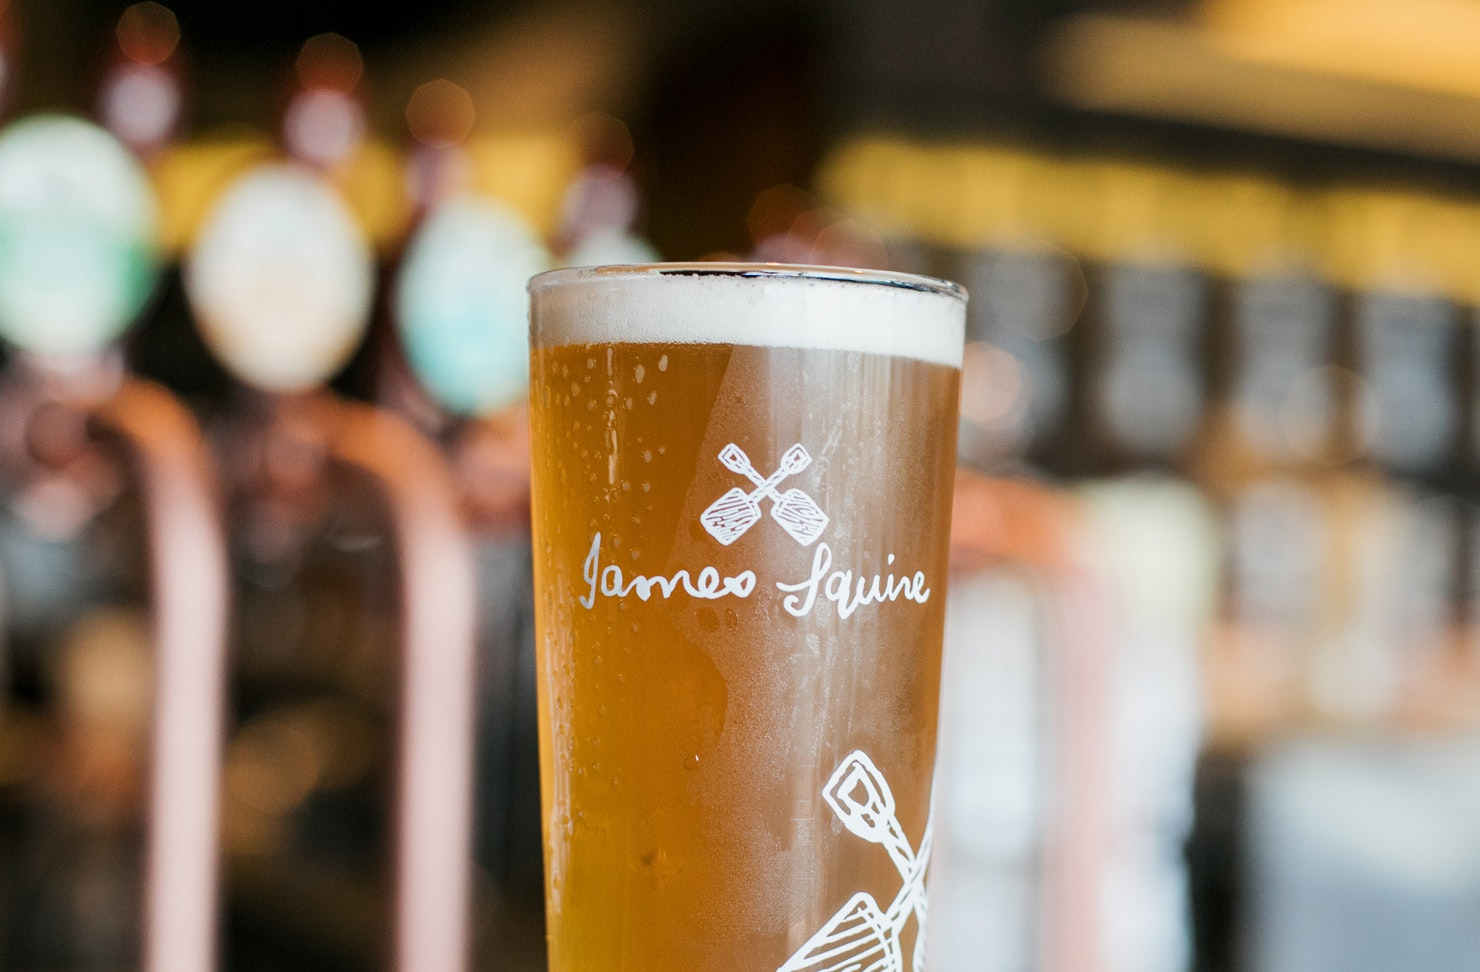 A pint with a James Squire logo is filled with a freshly-poured beer.